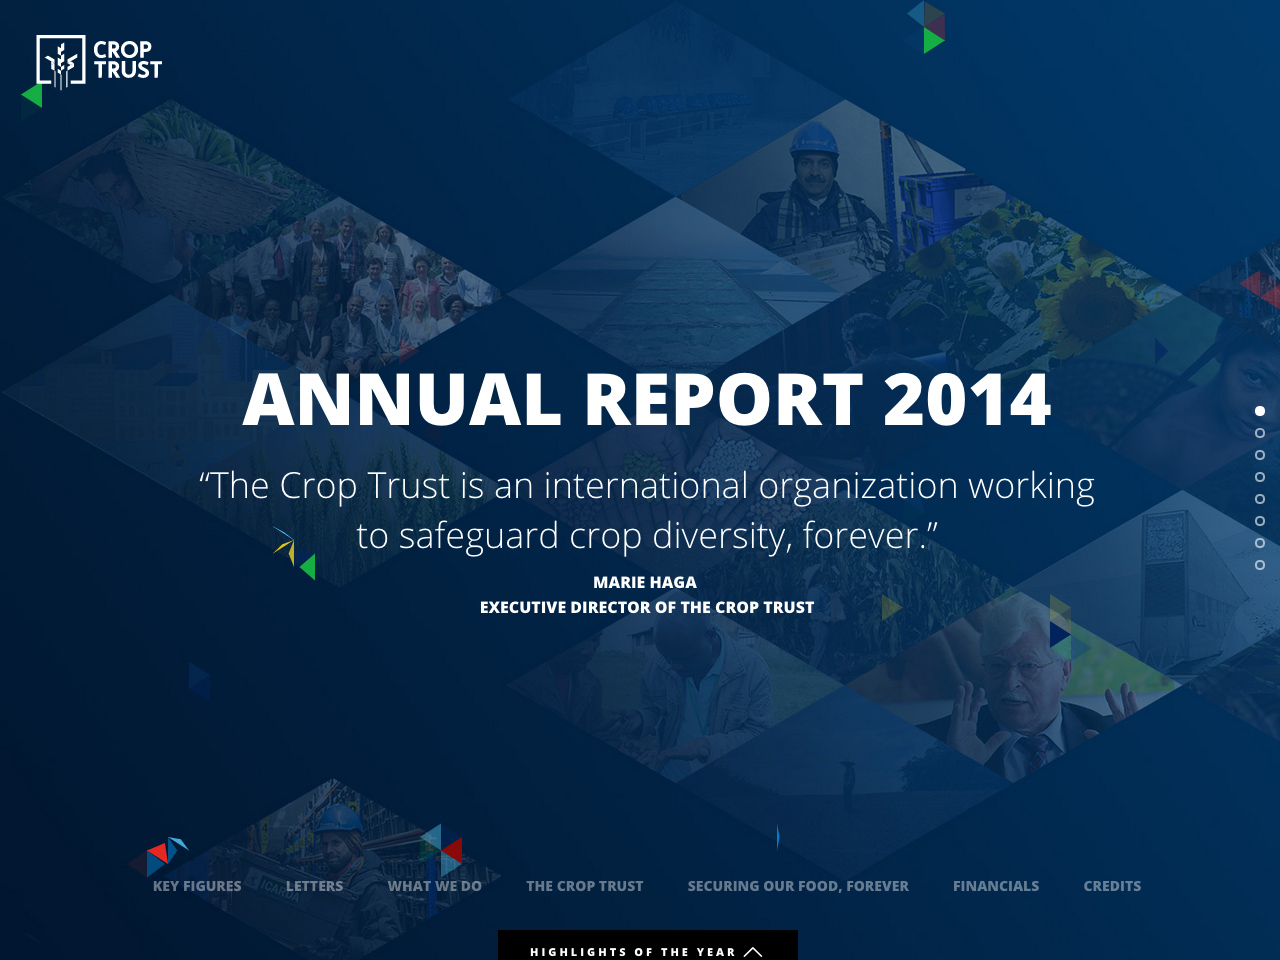 Annual Report 2014 | Crop Trust